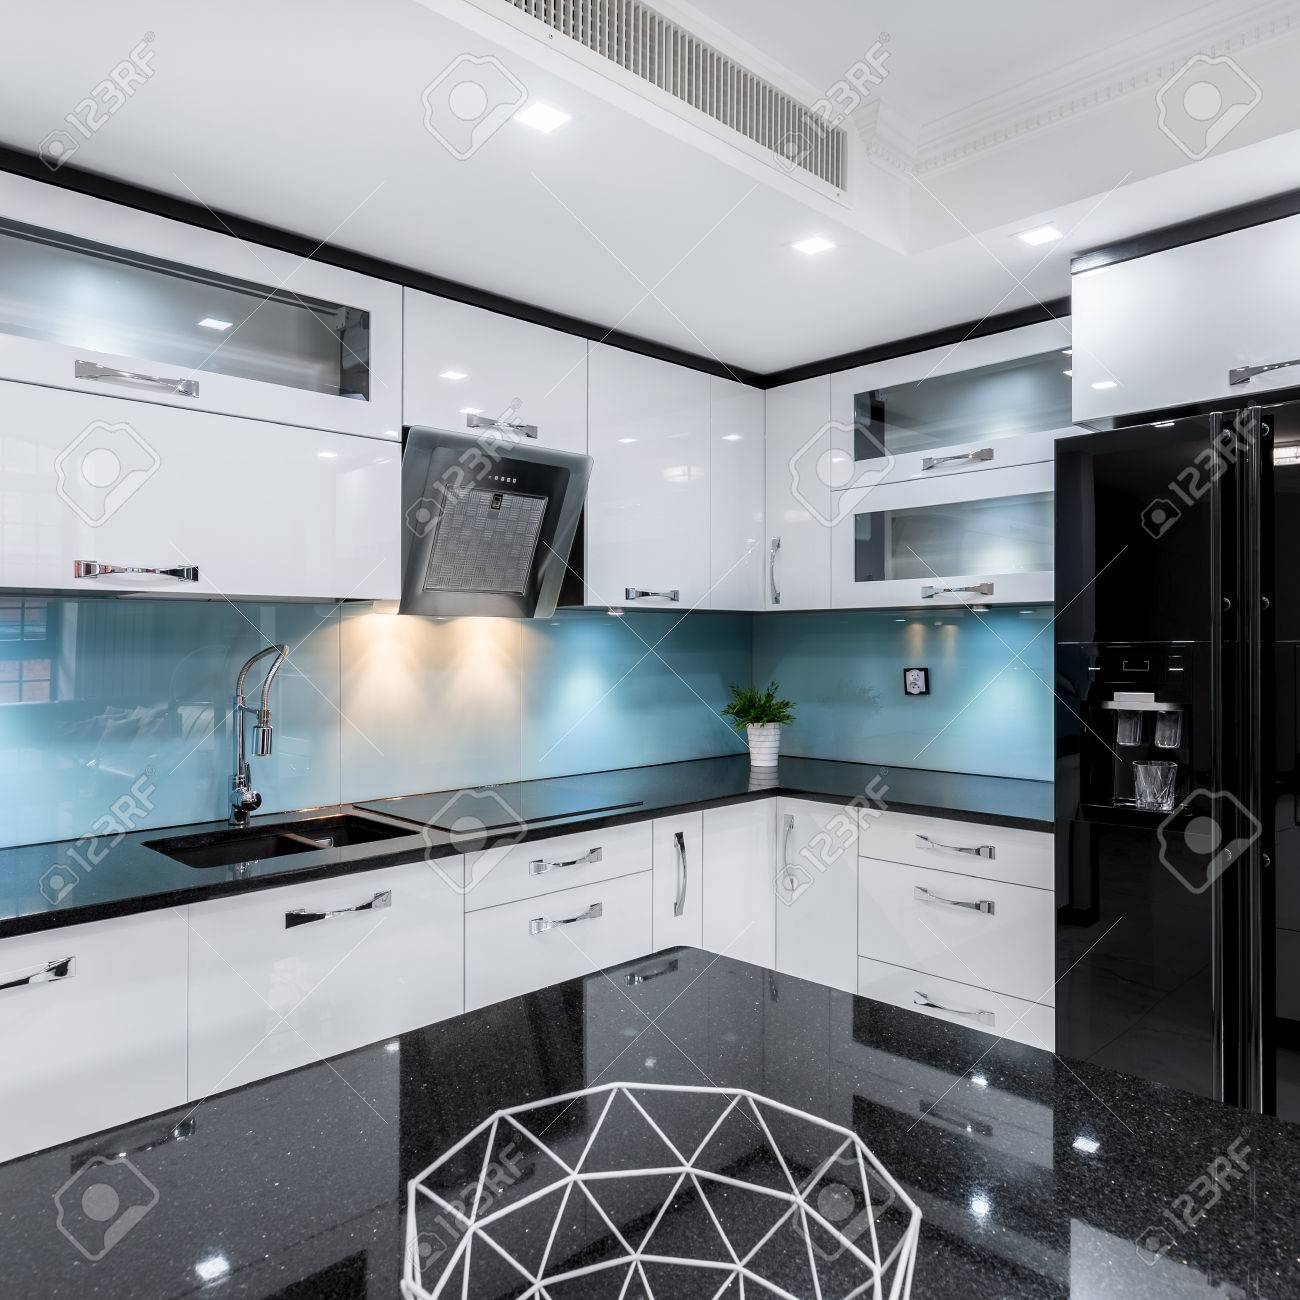 Modern, Black And White, High Gloss Kitchen With Table And ...